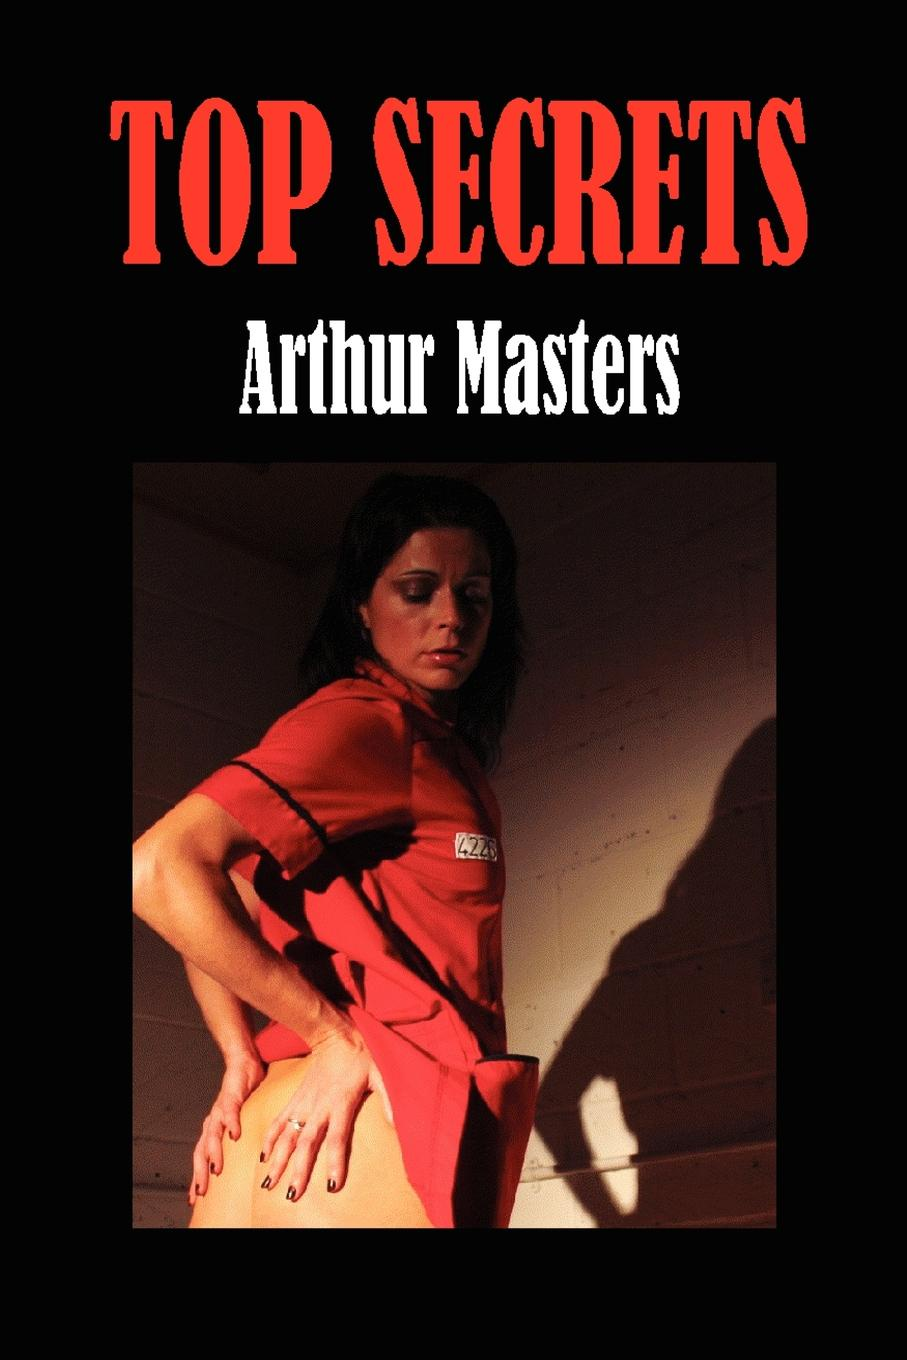 Arthur Masters TOP SECRETS the faberge his masters and artisans